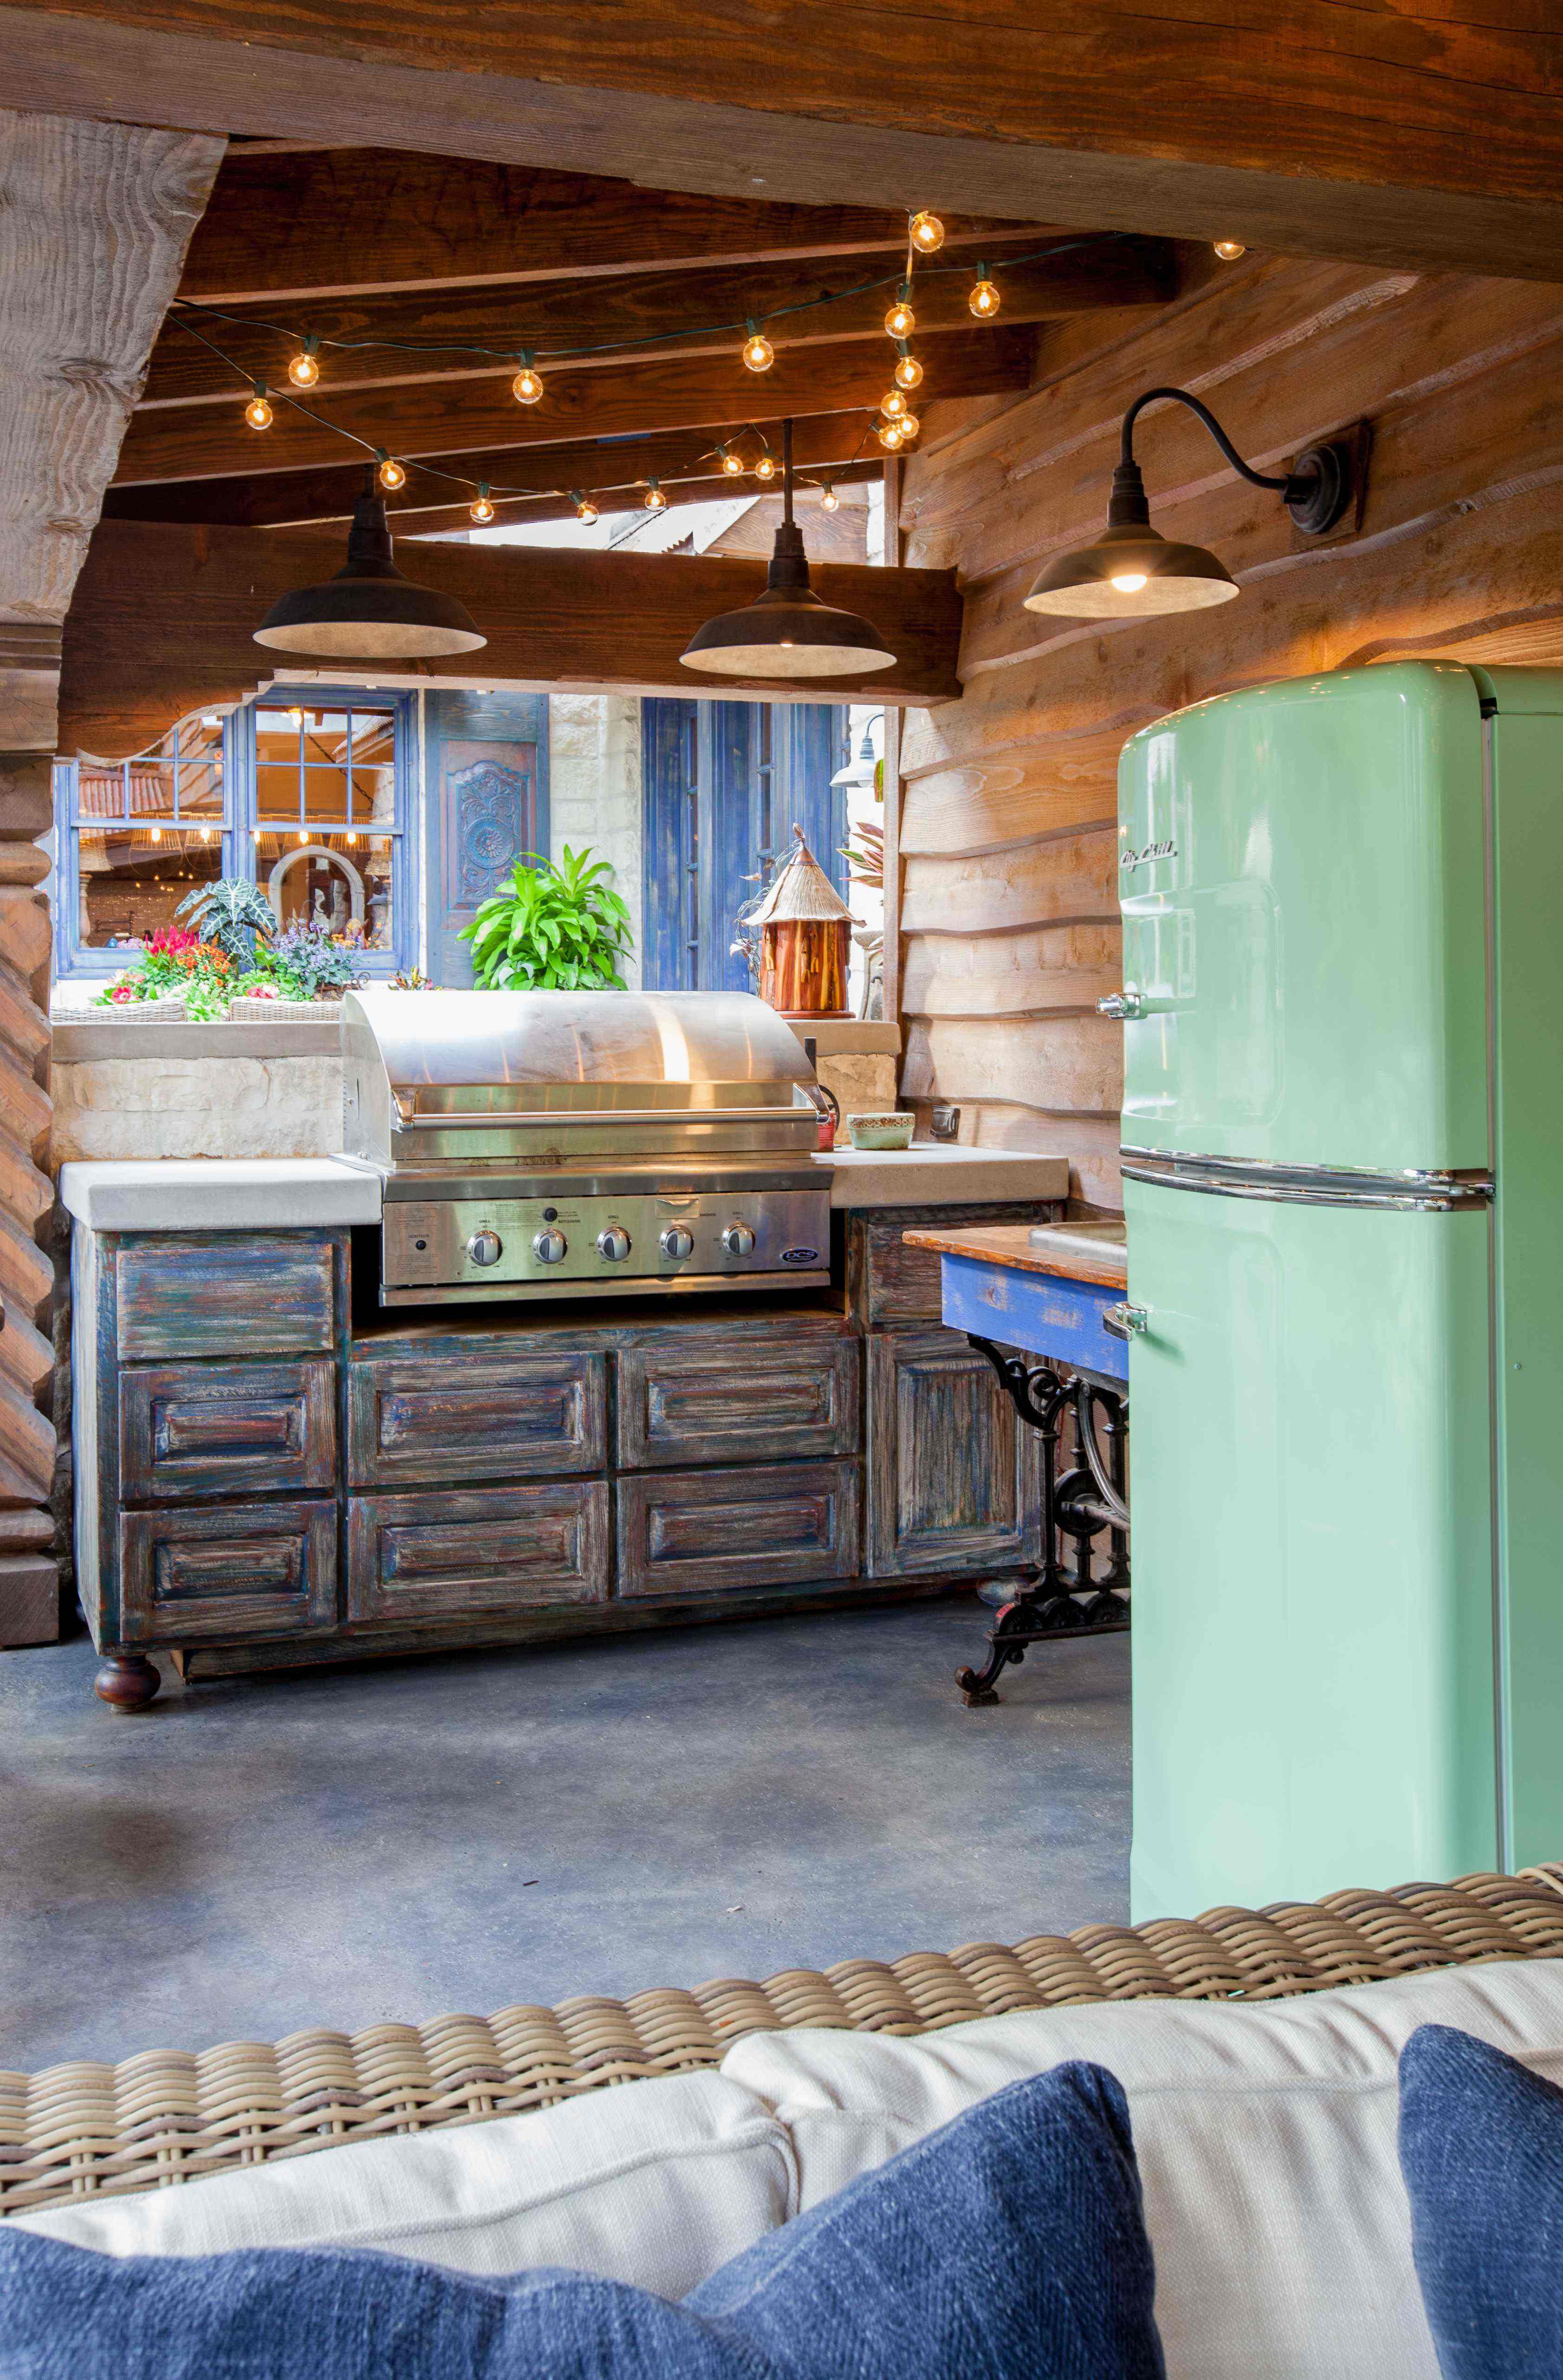 Adding A Retro Full Size Fridge Can Bring Both Color And Personality To Your Client S